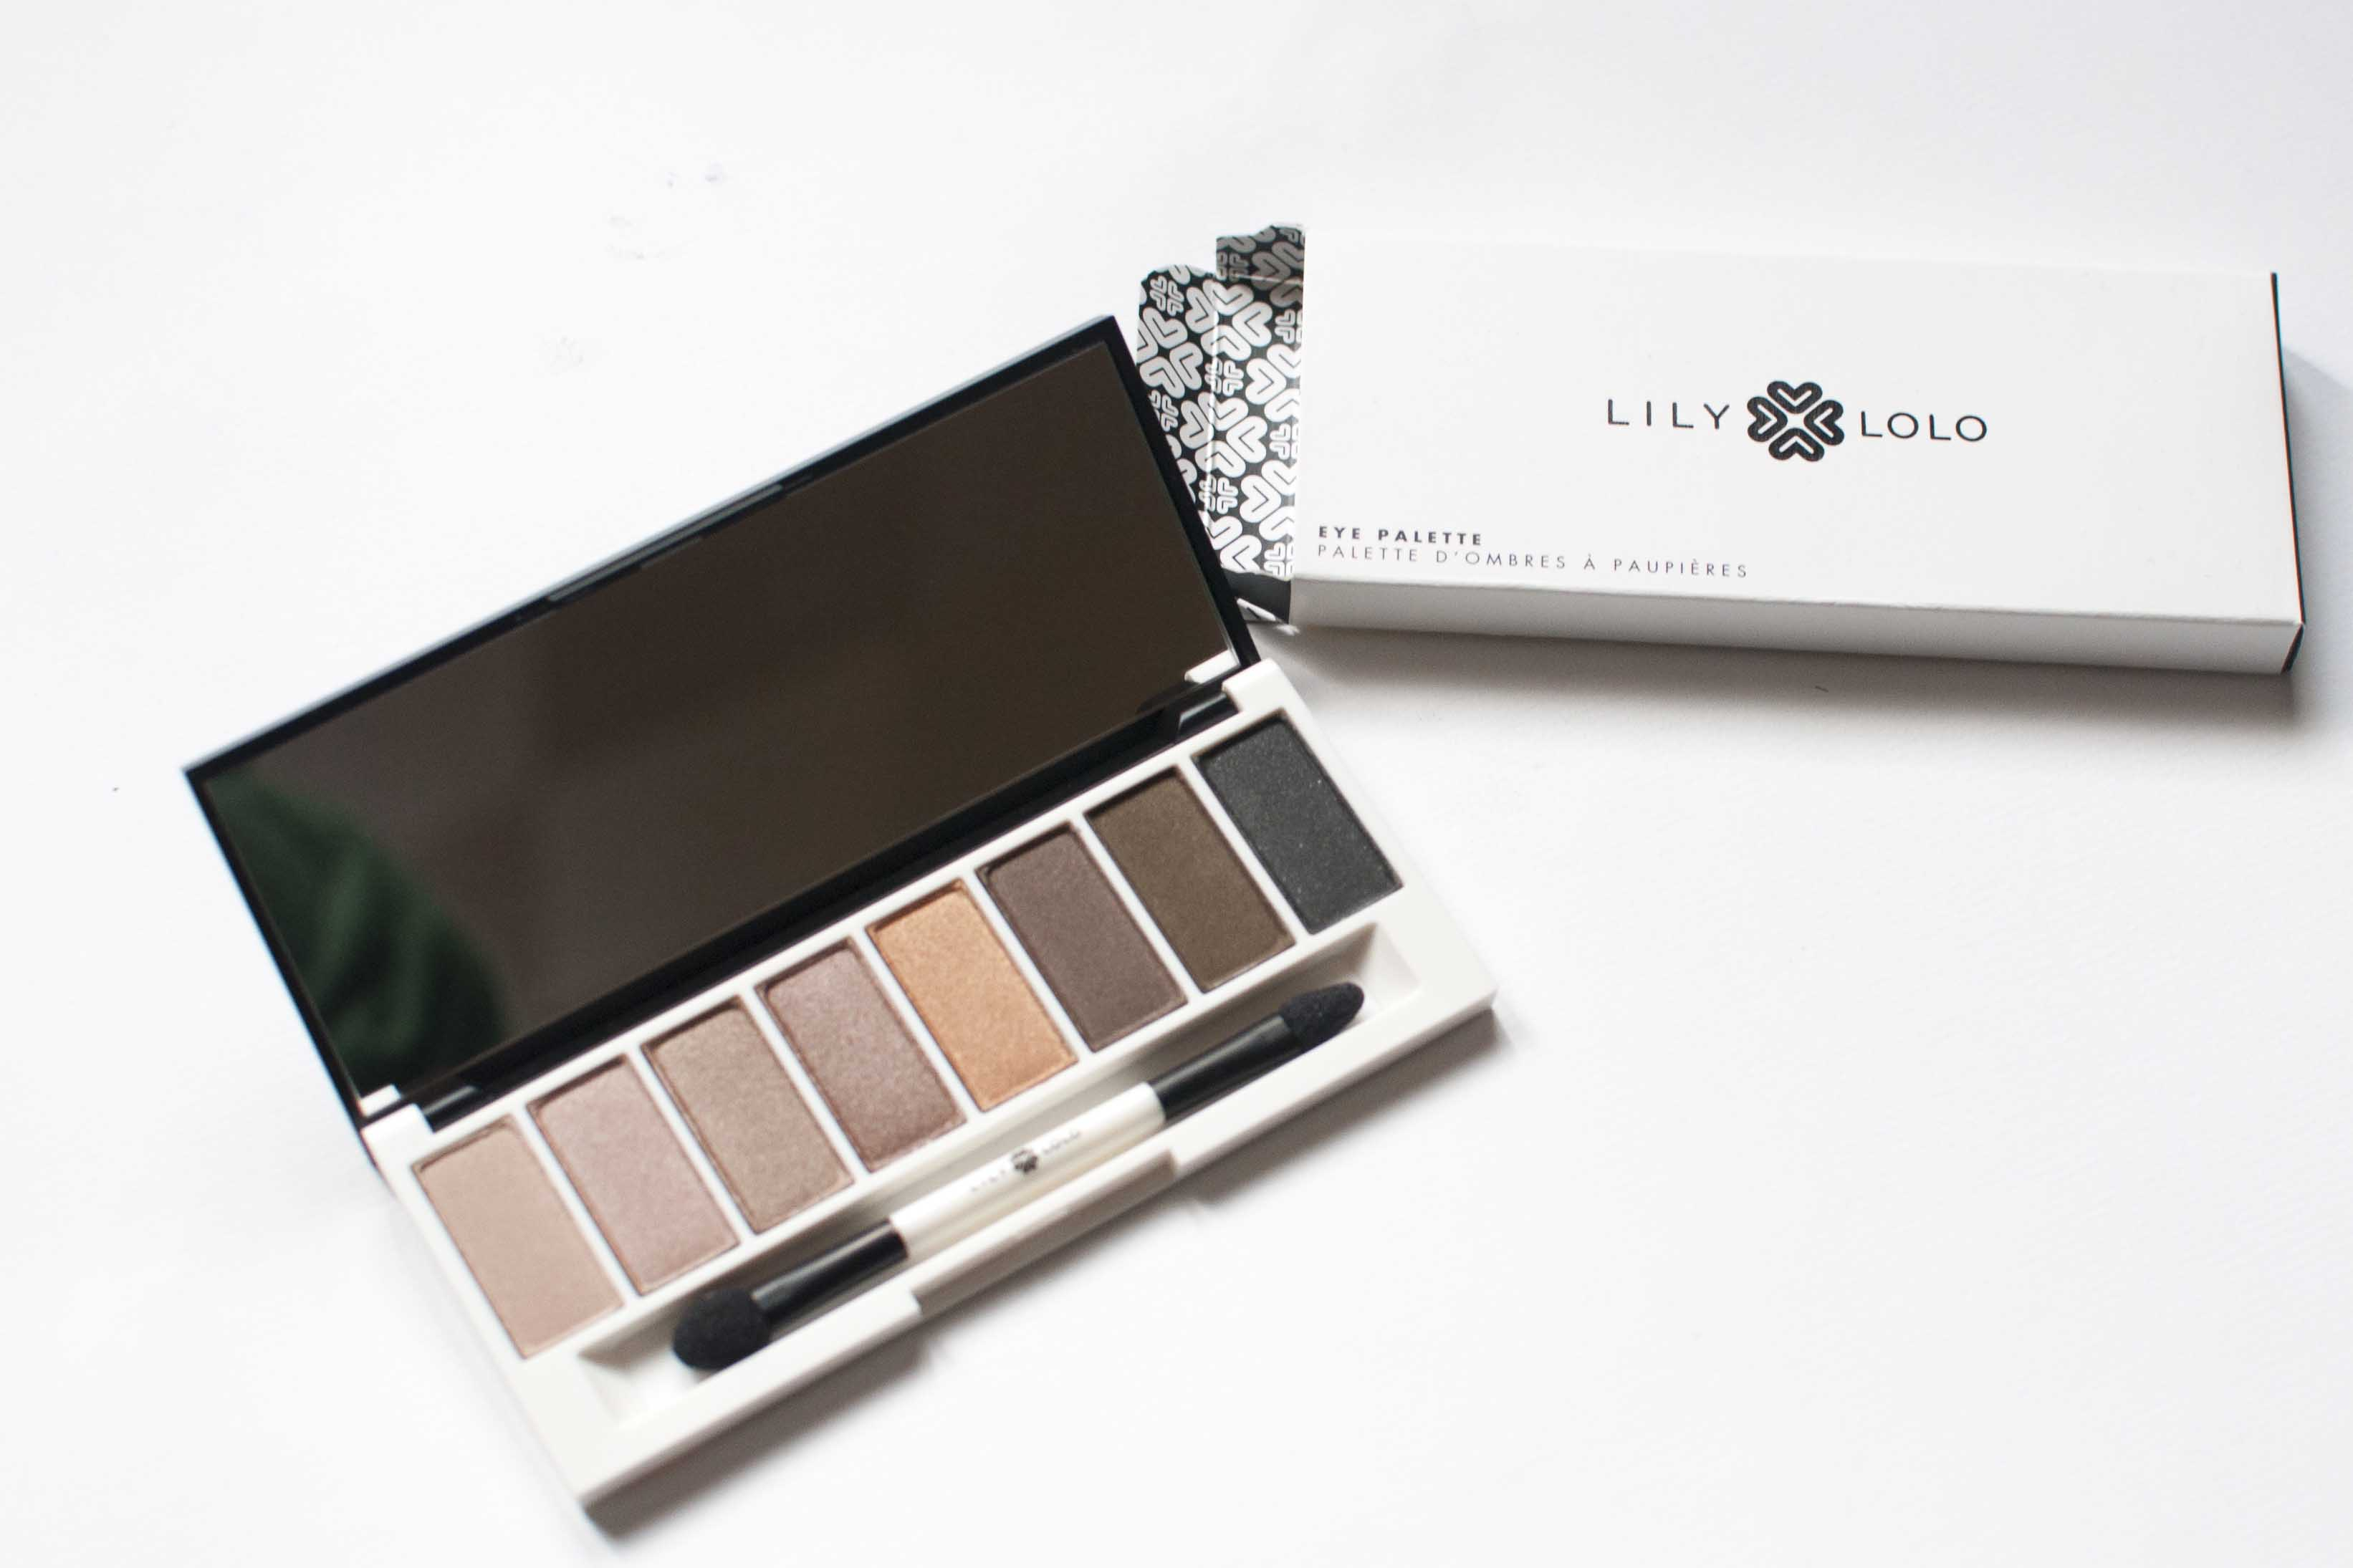 review Lily Lolo eyeshadow palette